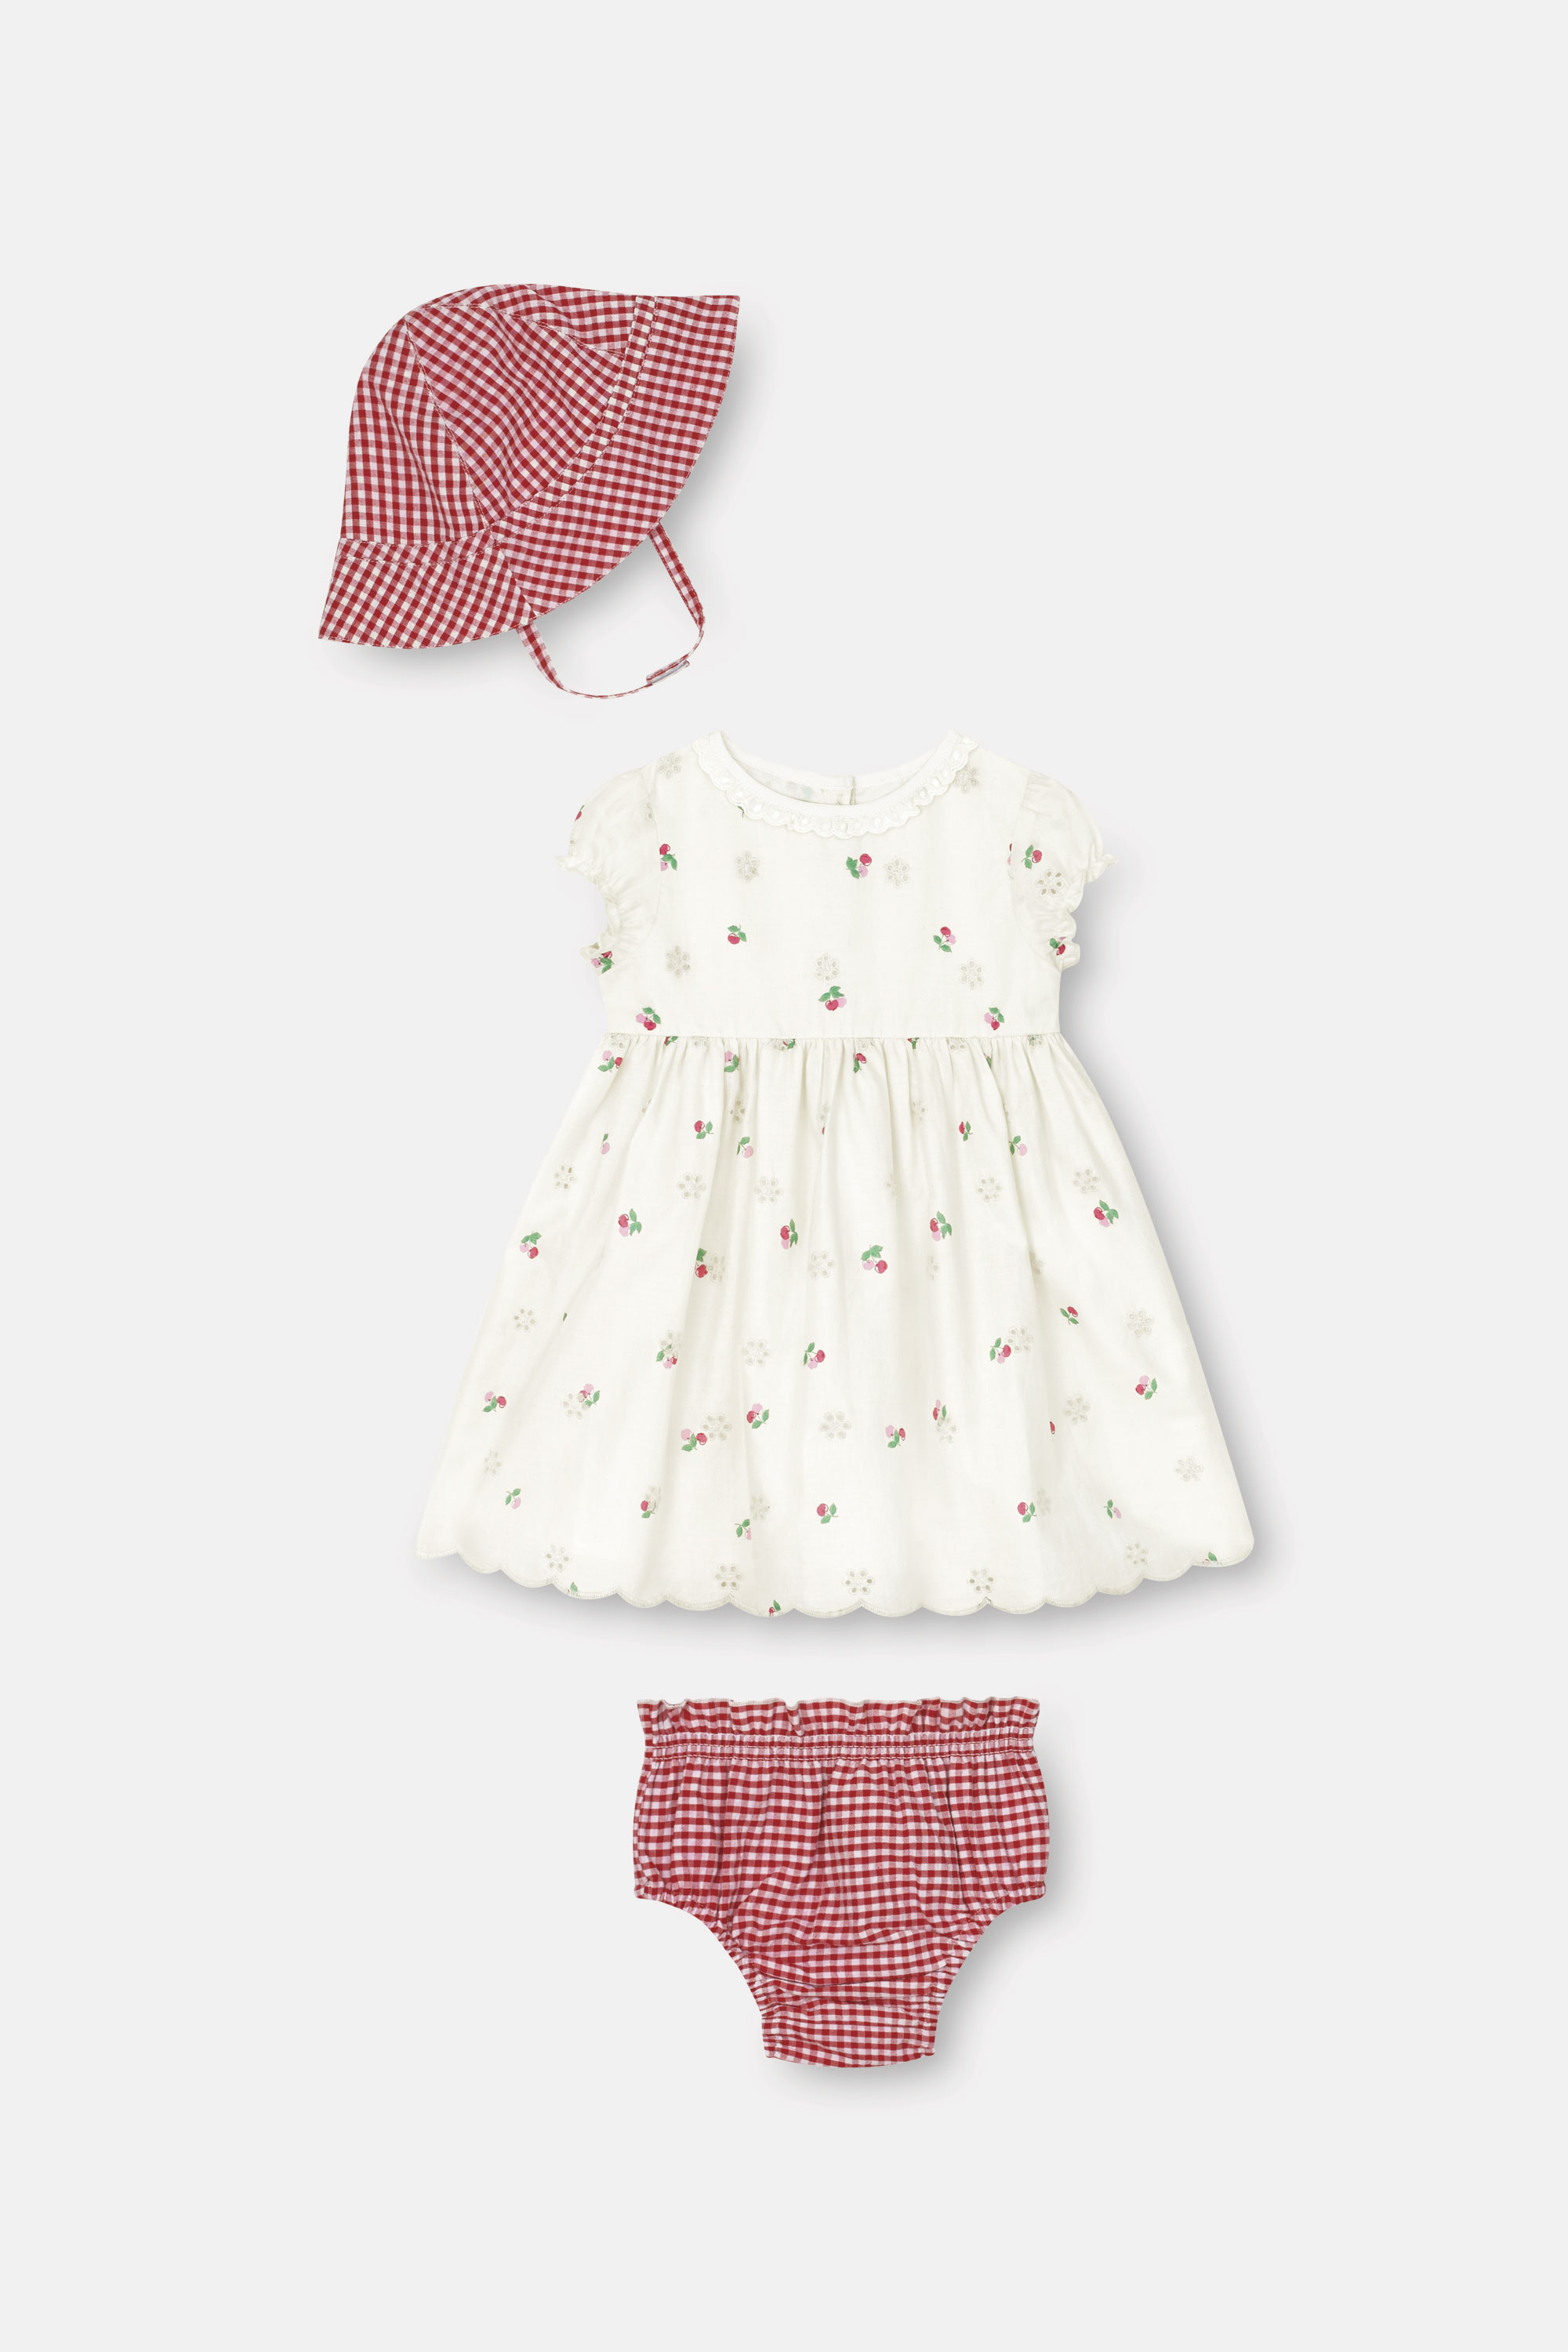 Cath Kidston Mini Cherries Baby Broderie Dress with Bloomers & Hat in Blush, 12-18 Mo